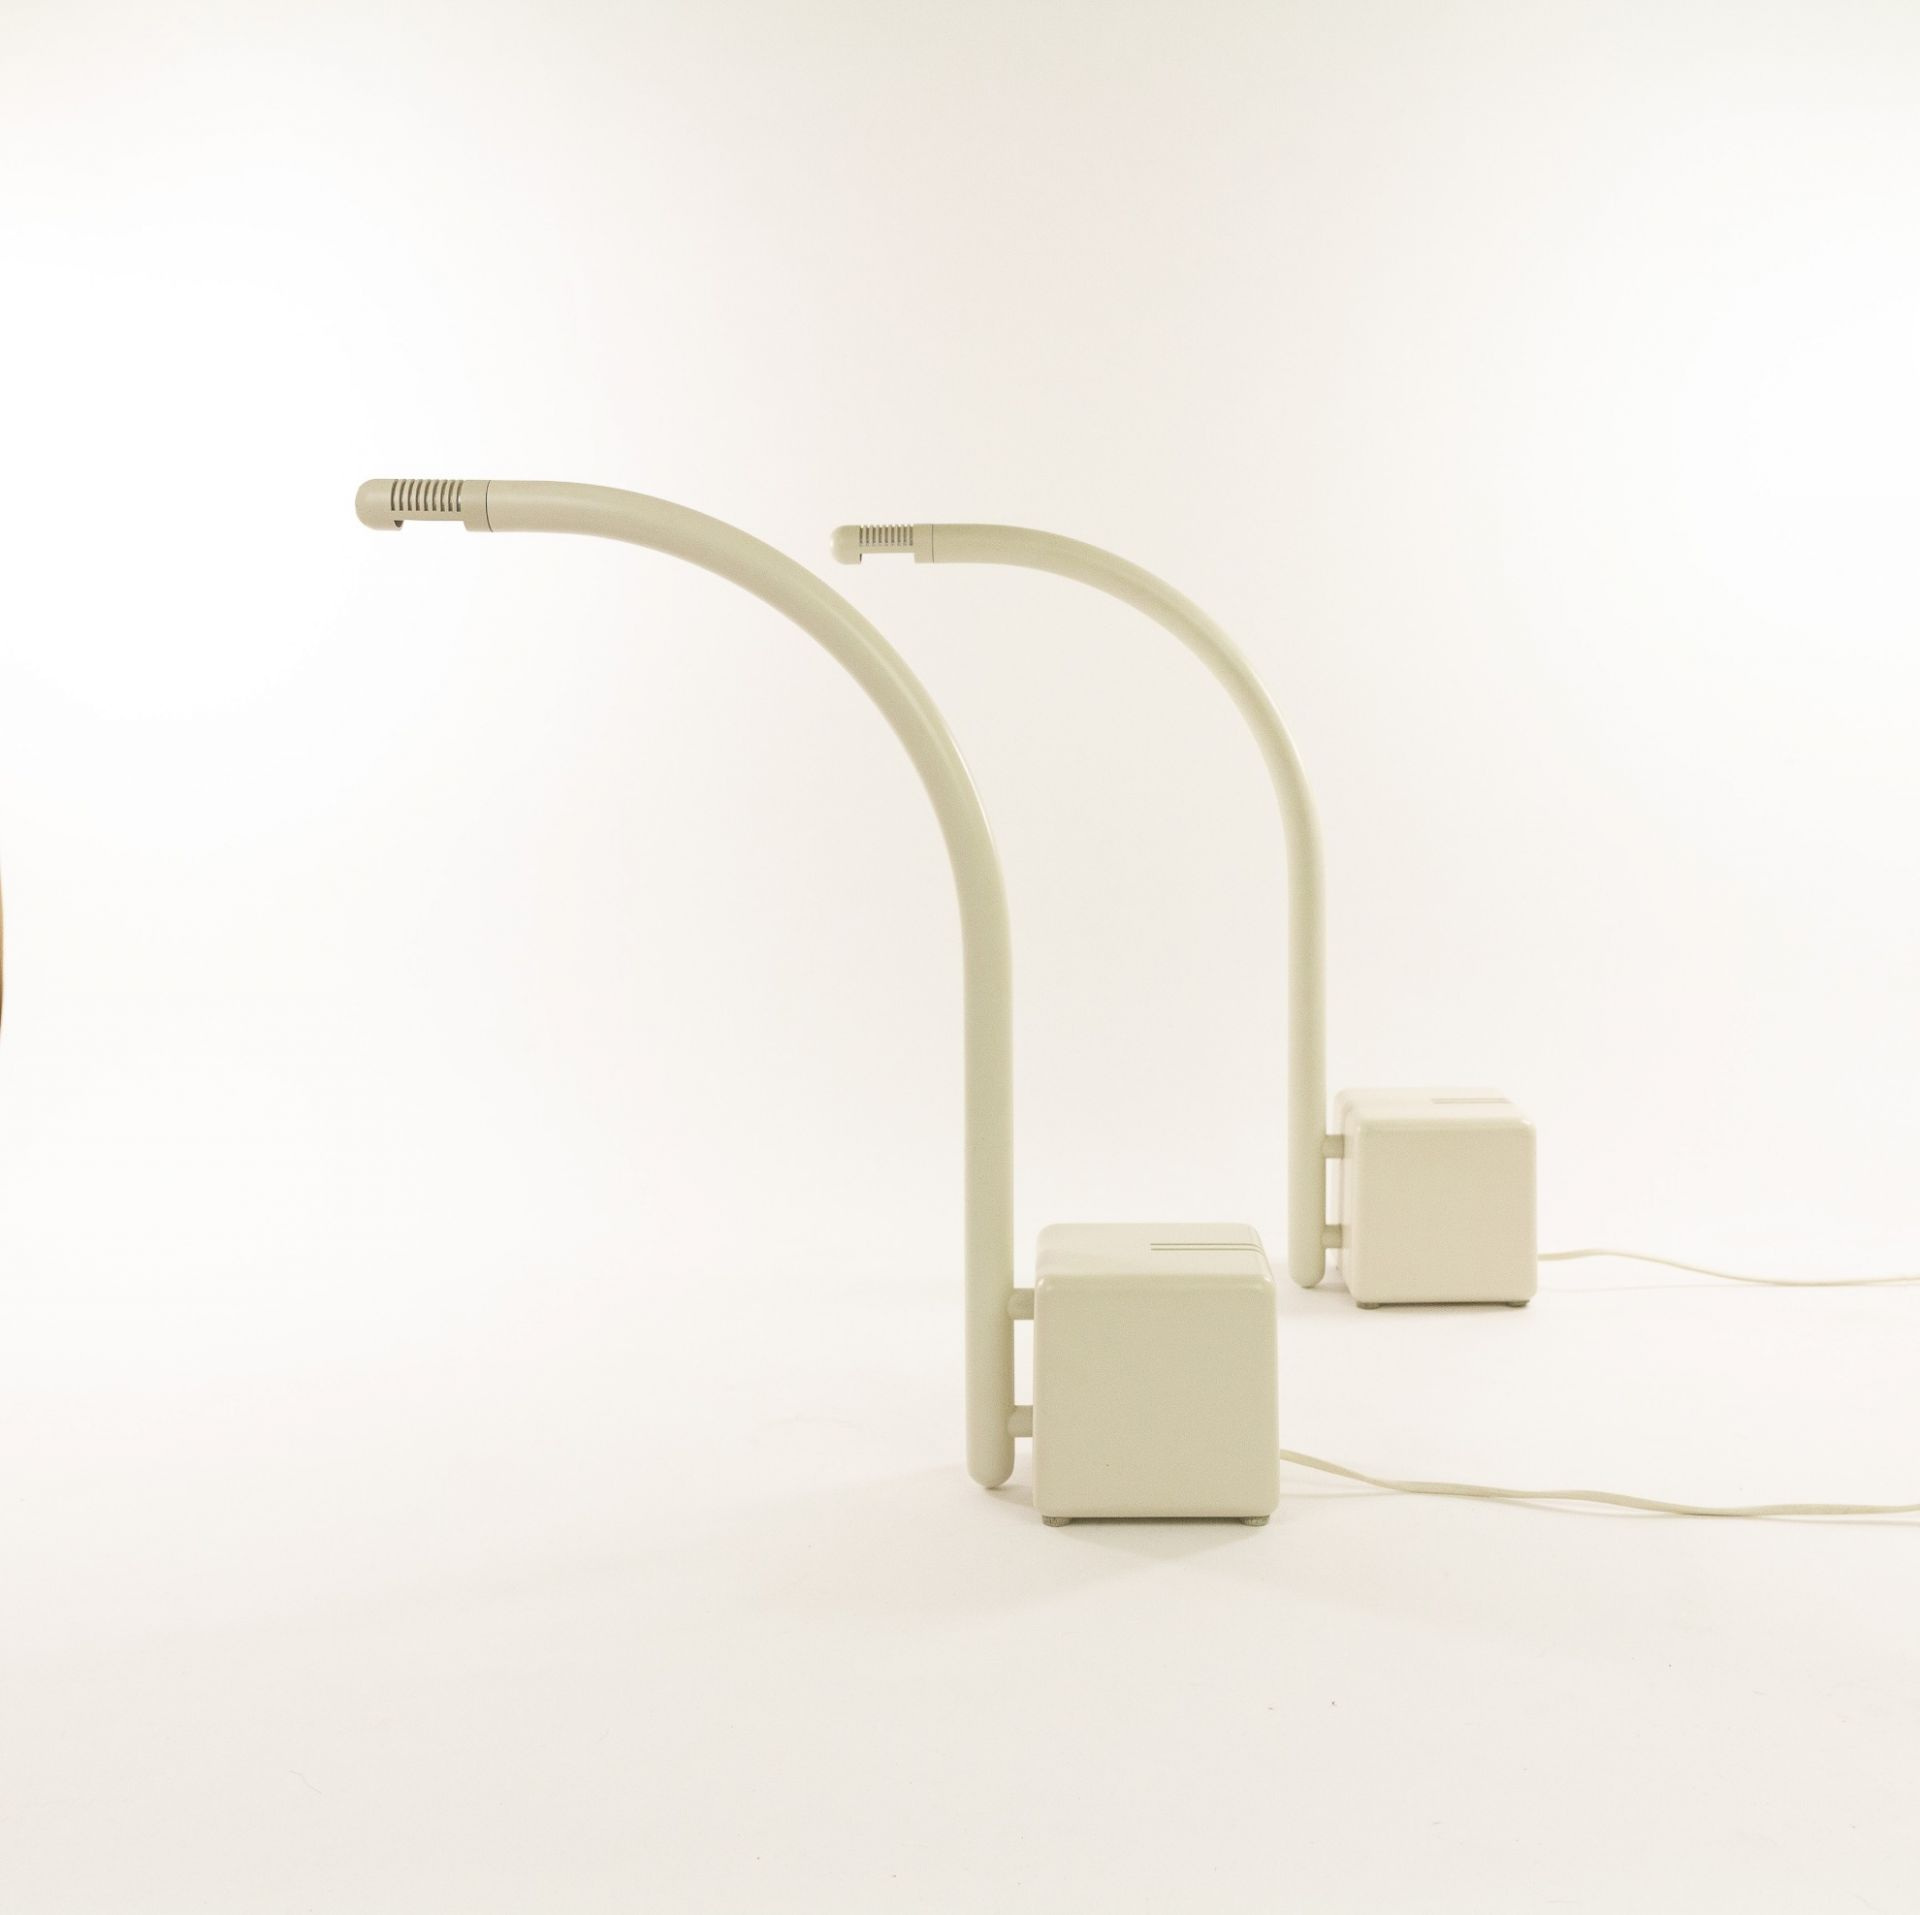 A pair of table lamps by Claus Bonderup & Torsten Thorup for Focus Denmark, 1970